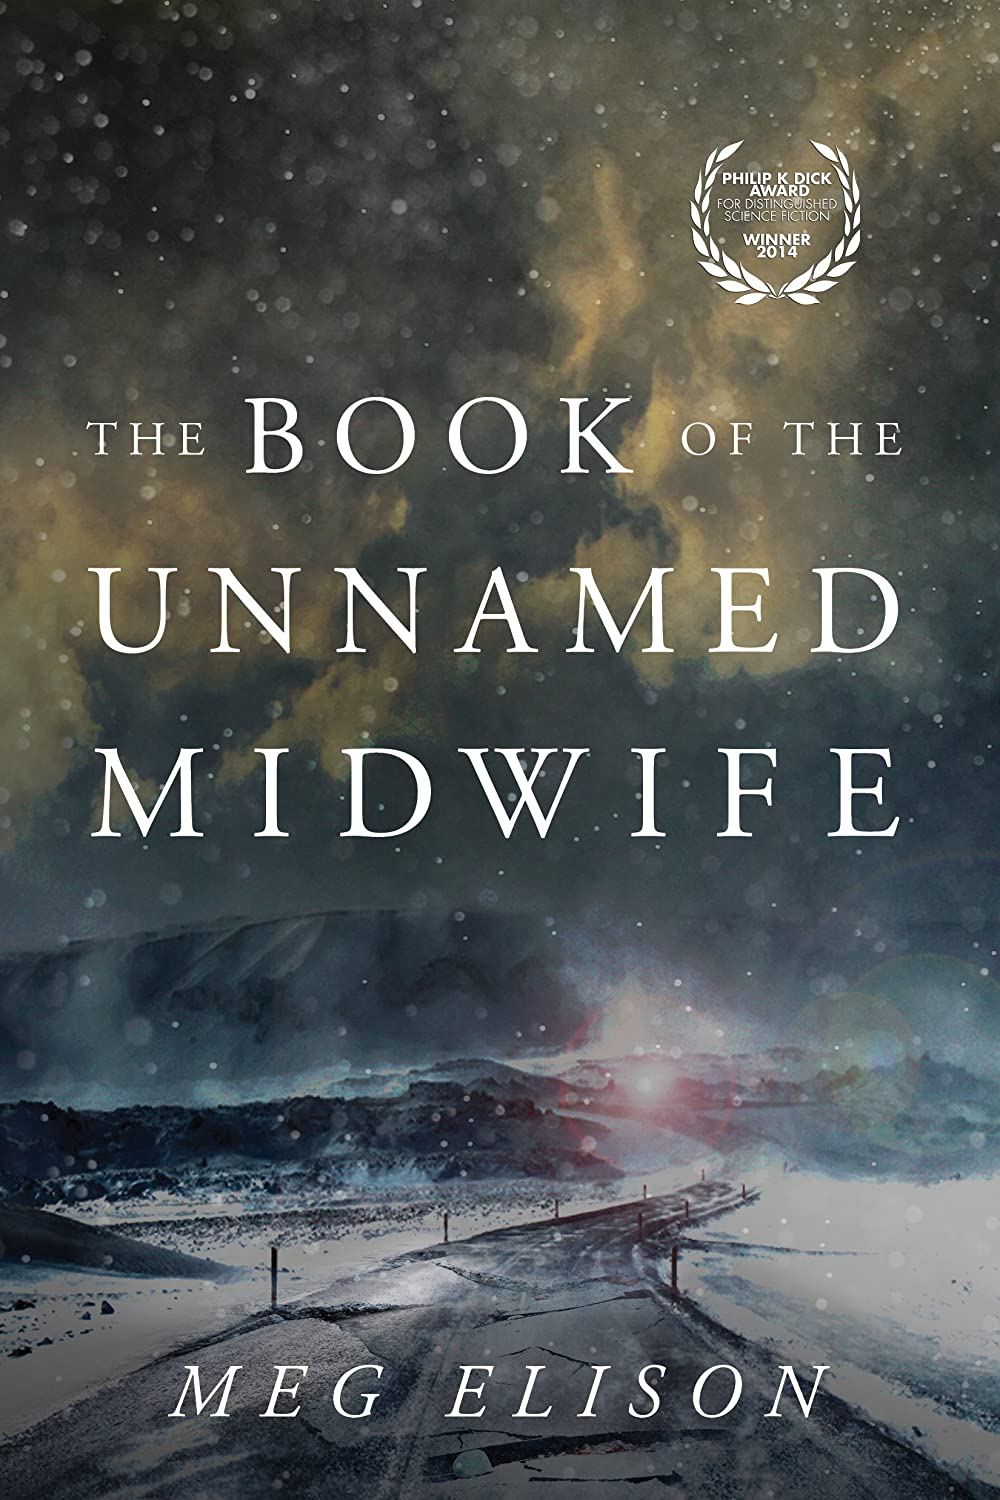 Image result for the book of the unnamed midwife